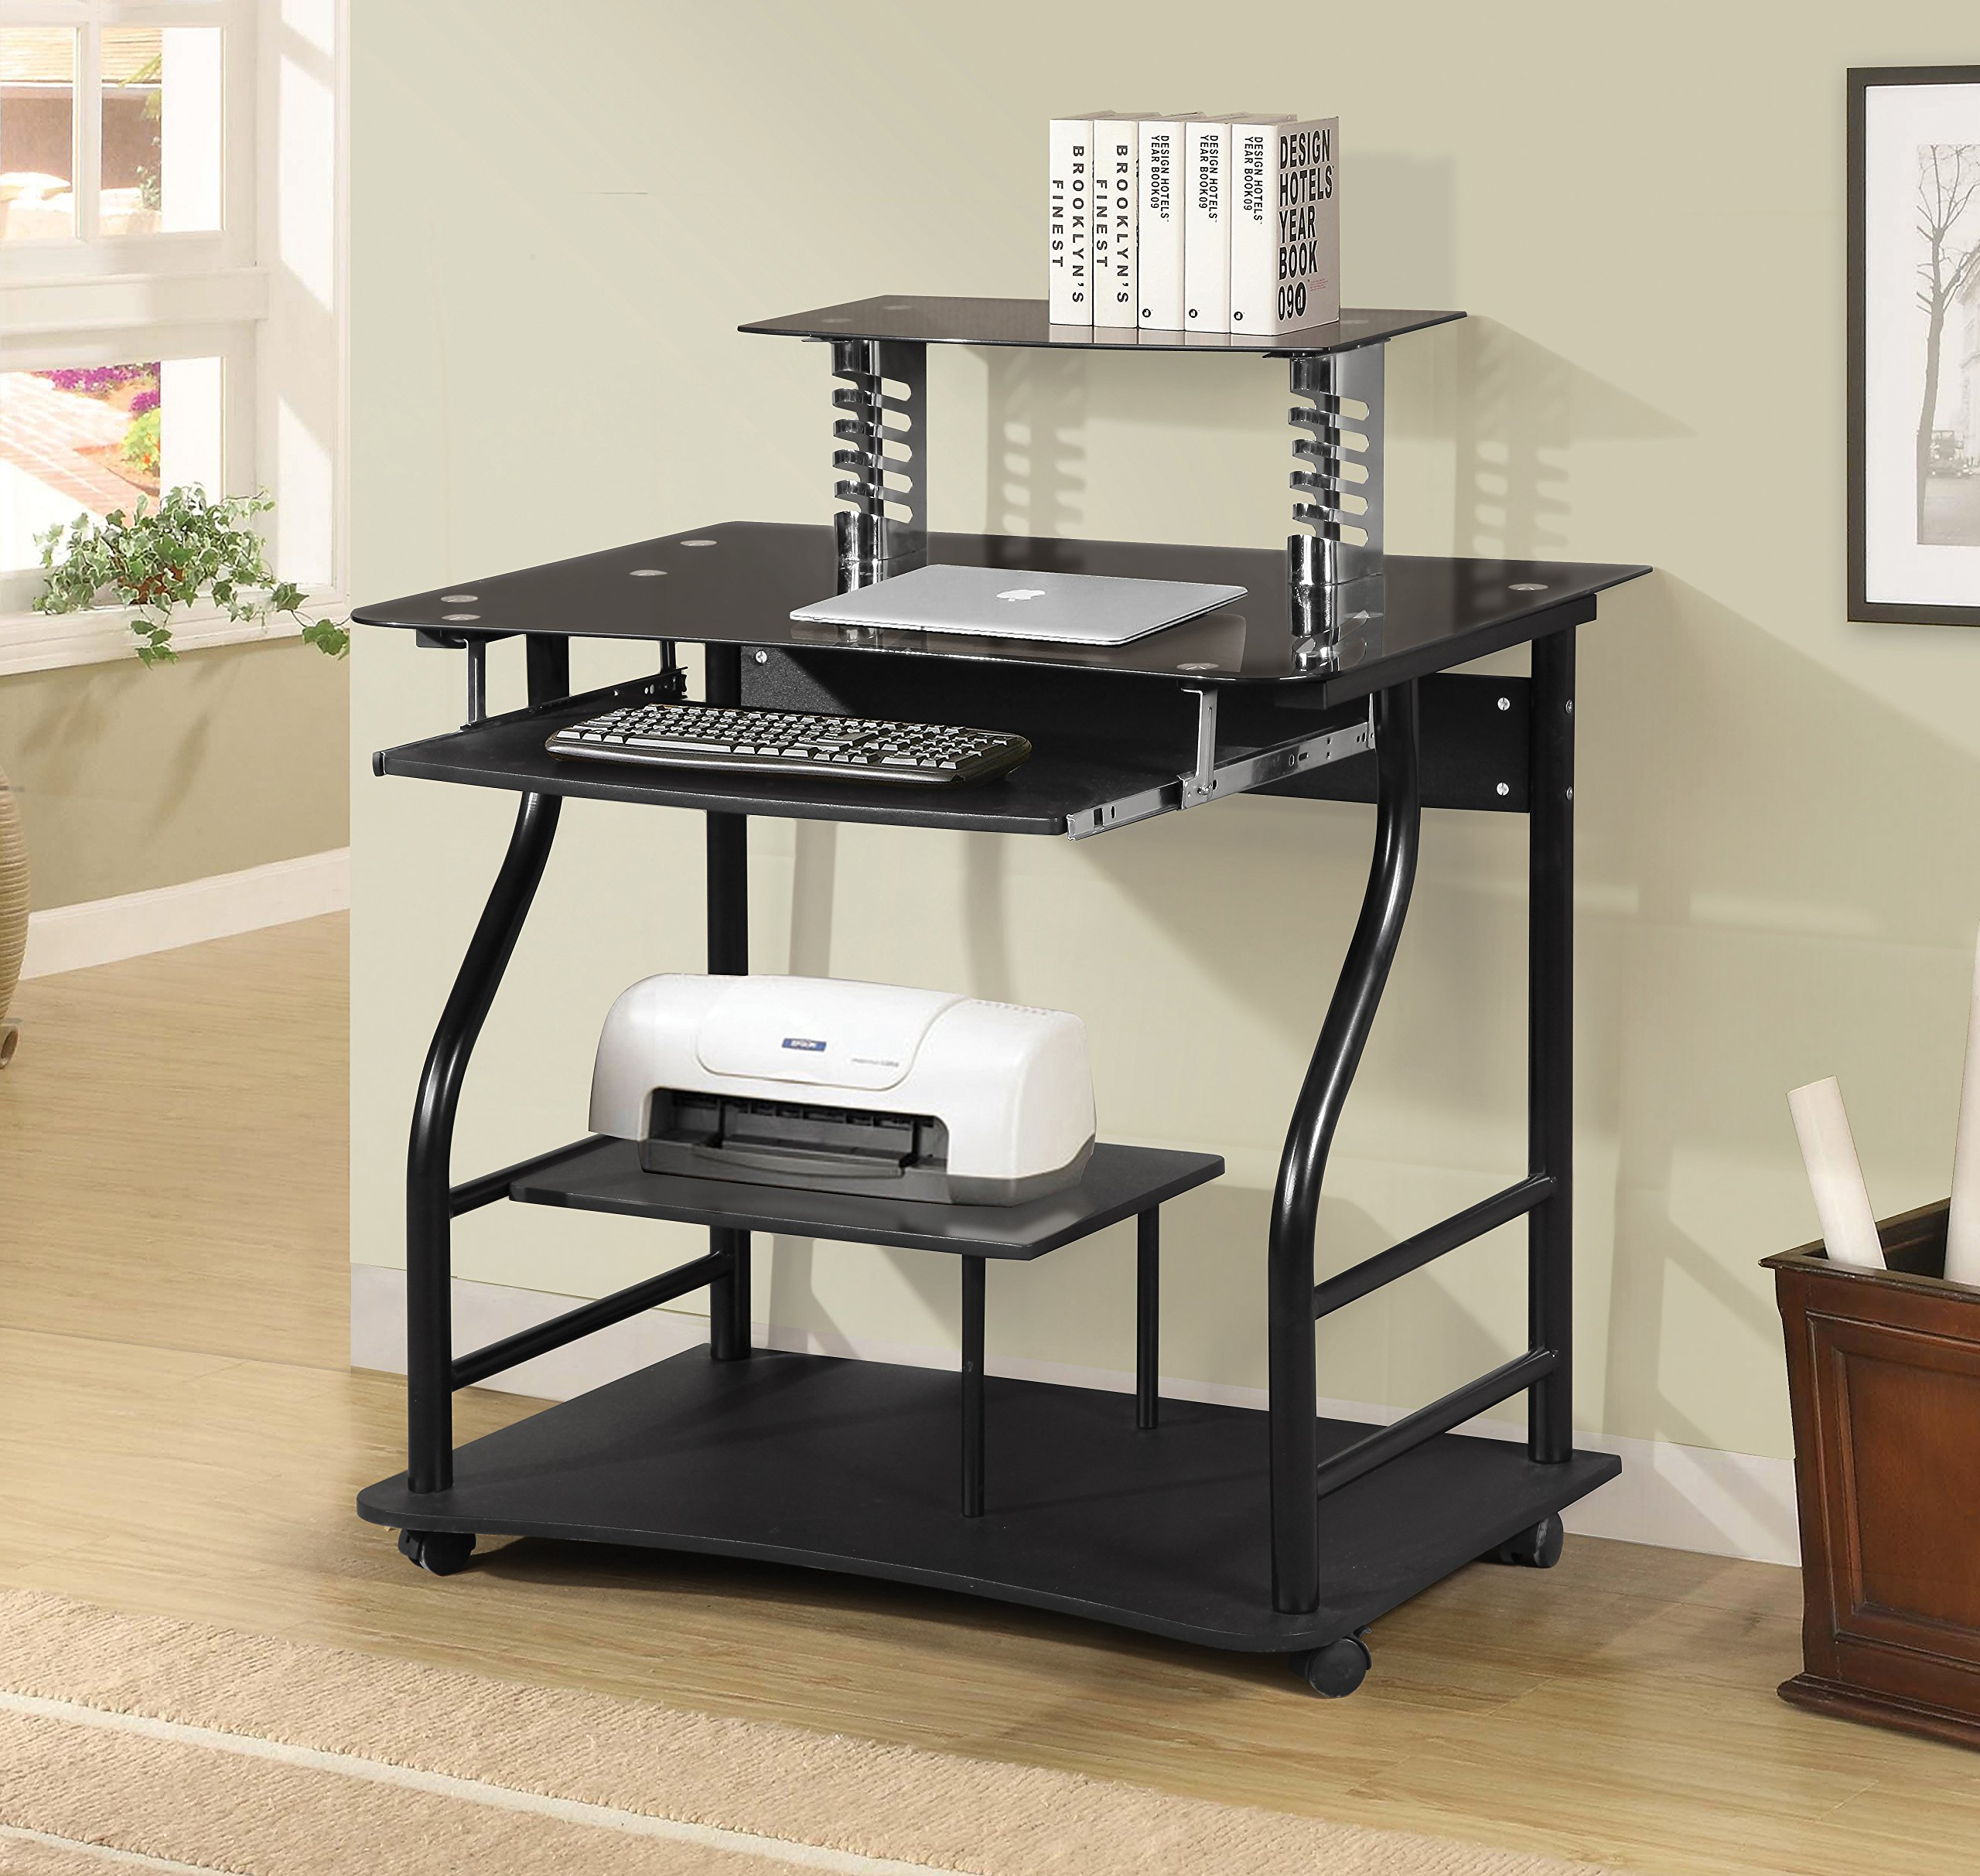 Home Source Industries AMT-710 Computer Cart on Casters, Glass Black